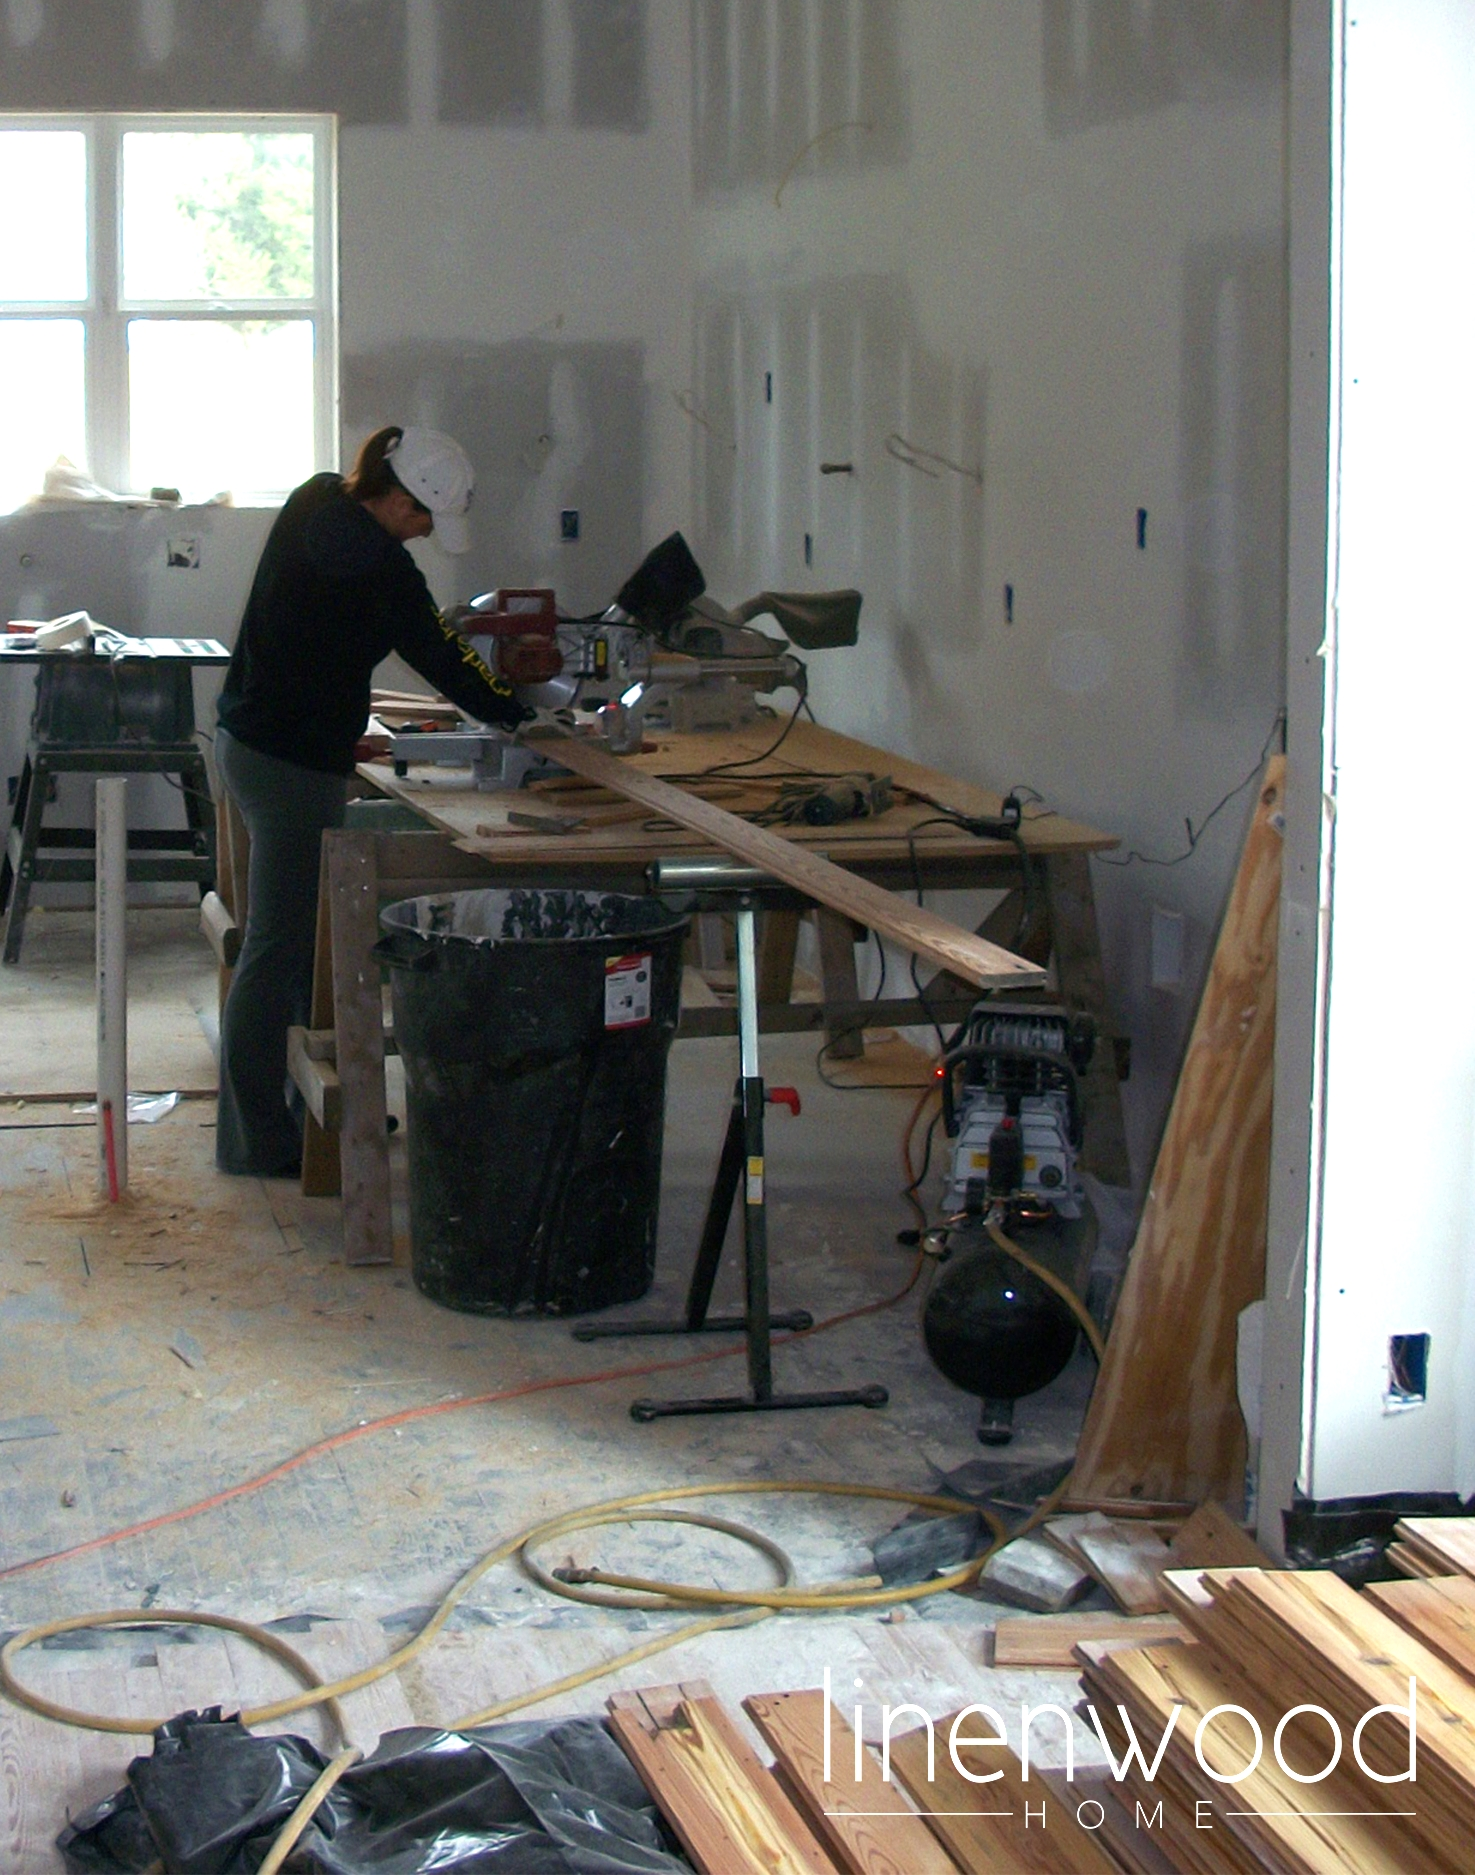 That's me, using the saw to cut the reclaimed hard wood floors. Yep - I can use power tools!